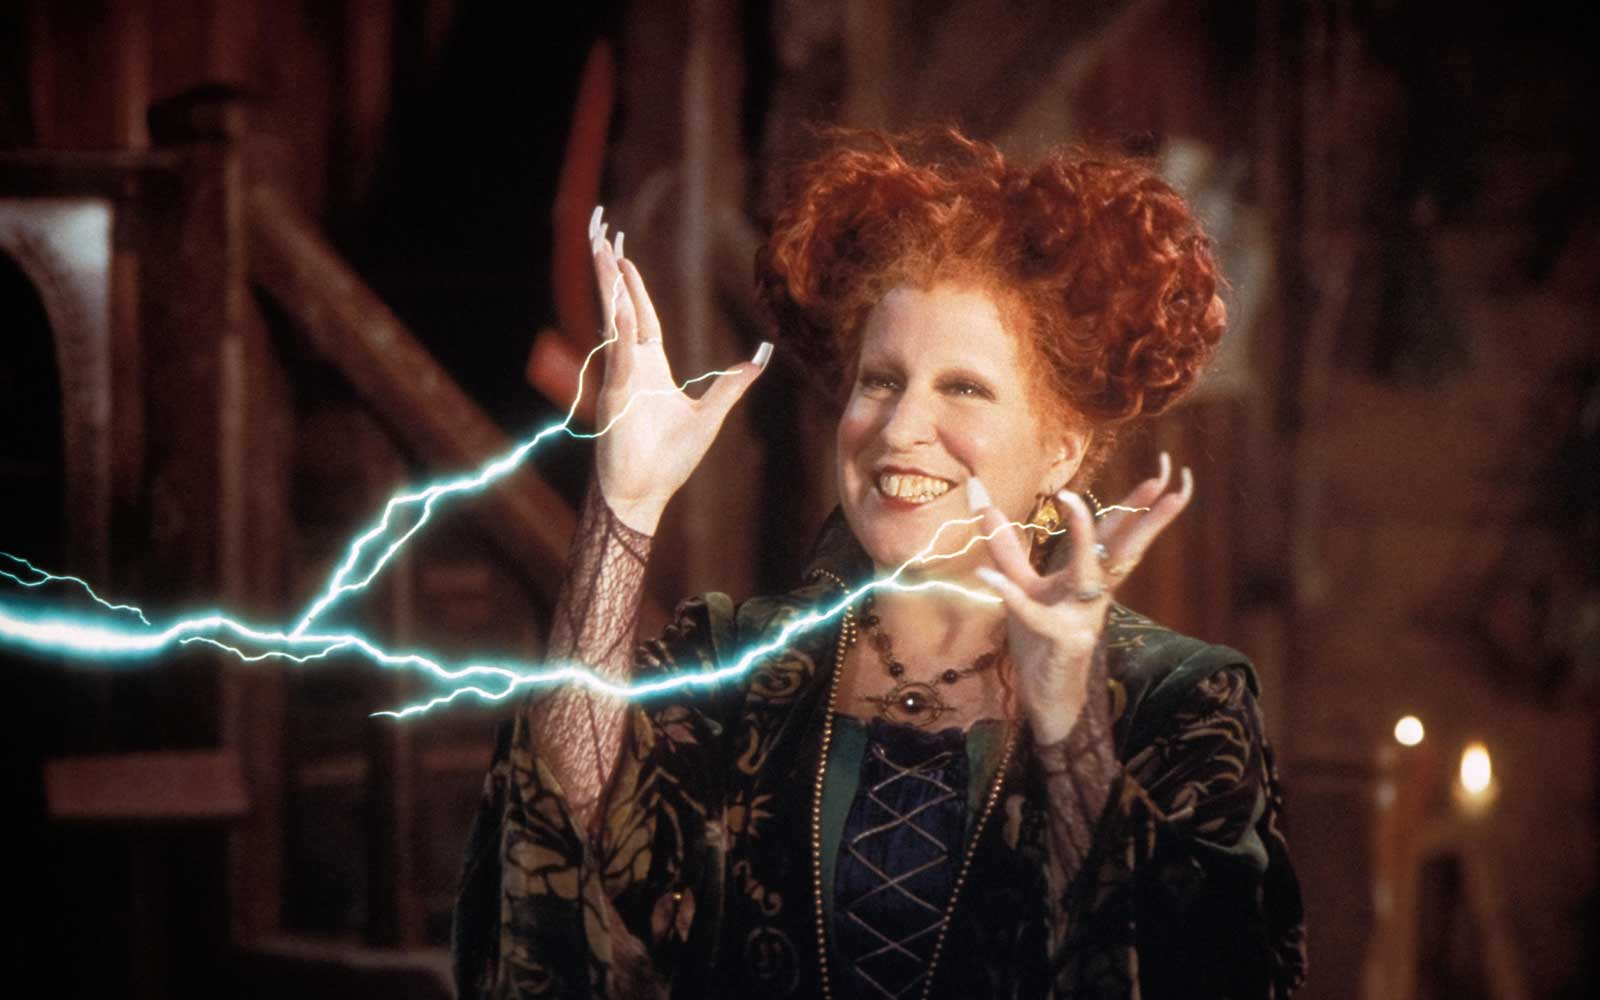 'Hocus Pocus' Is Finally Returning to Theaters — Here Are 7 Facts You Never Knew